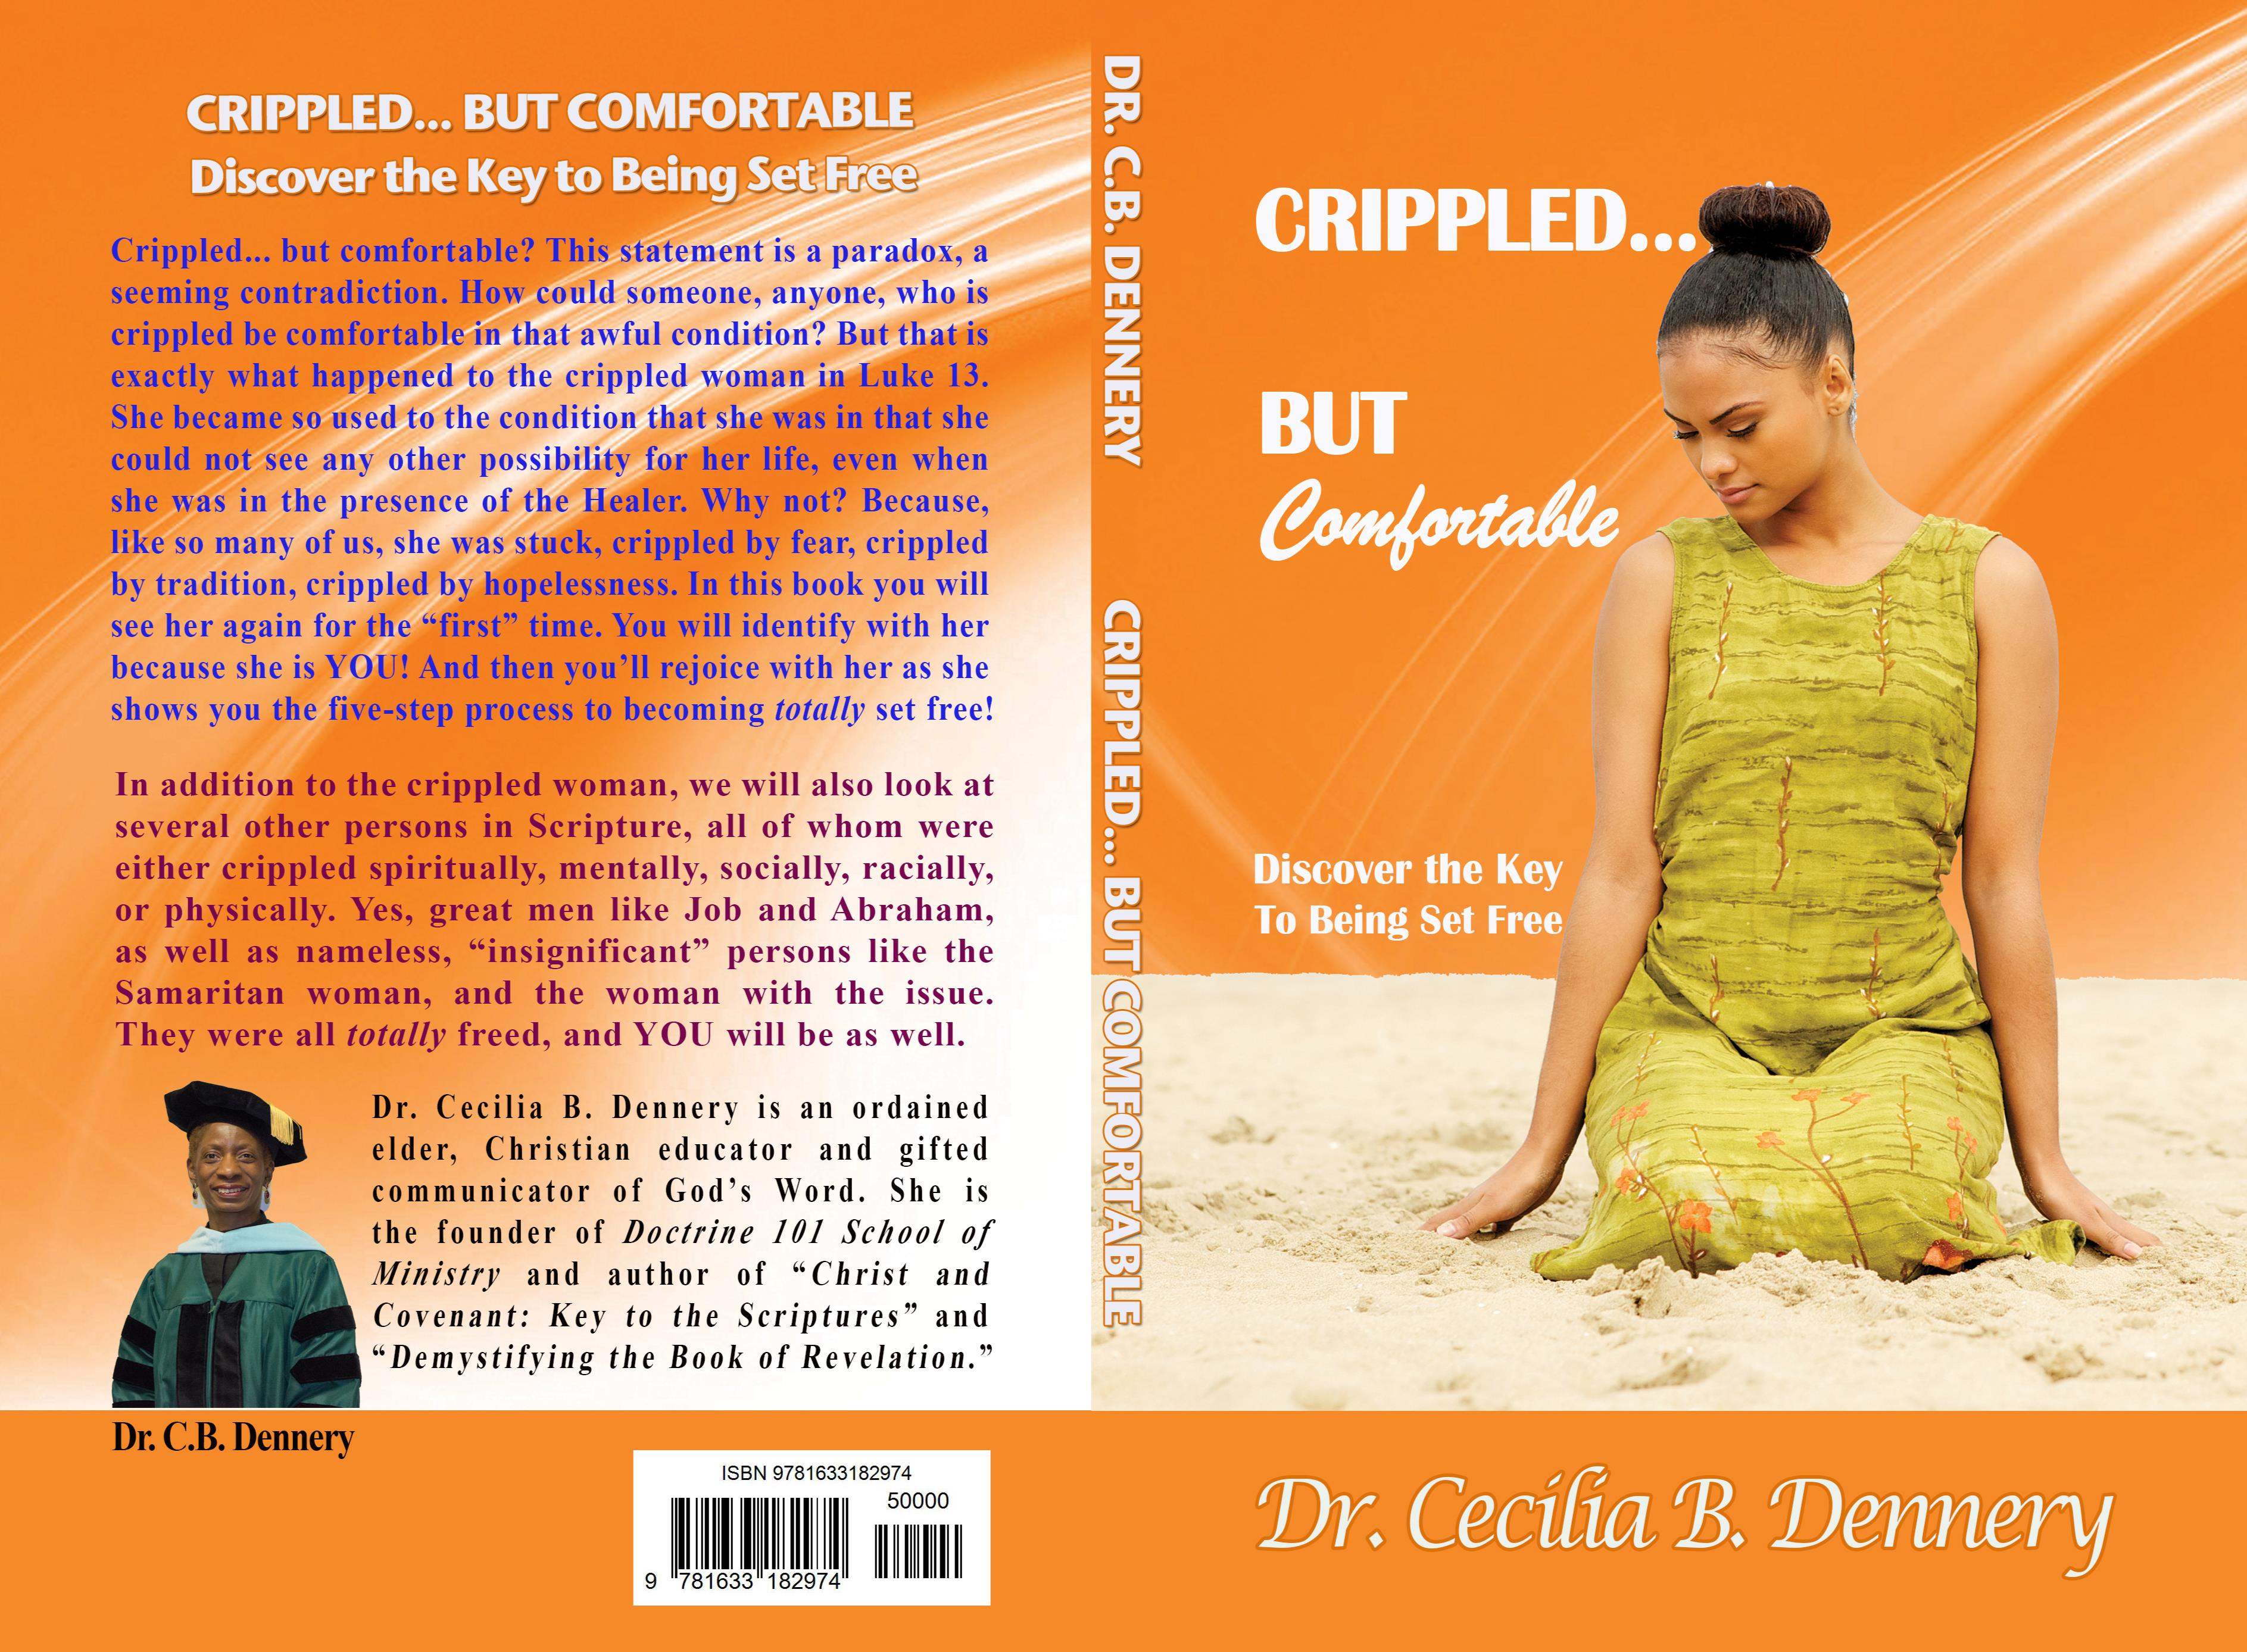 Crippled... But Comfortable: Discover the Key to Being Set Free cover image